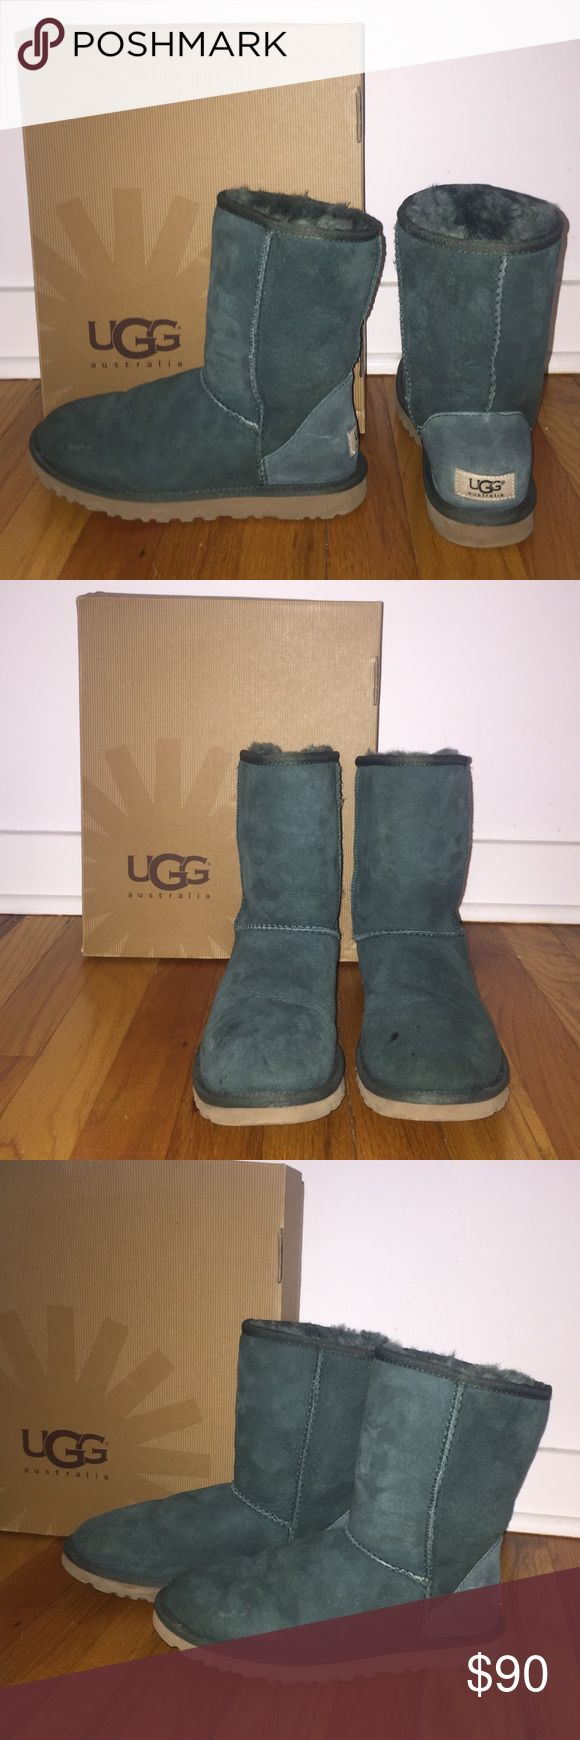 Ugg Australia Classic Hunter Green Worn once. One spot on right boot's toe as shown in picture. Other than that brand new. UGG Shoes